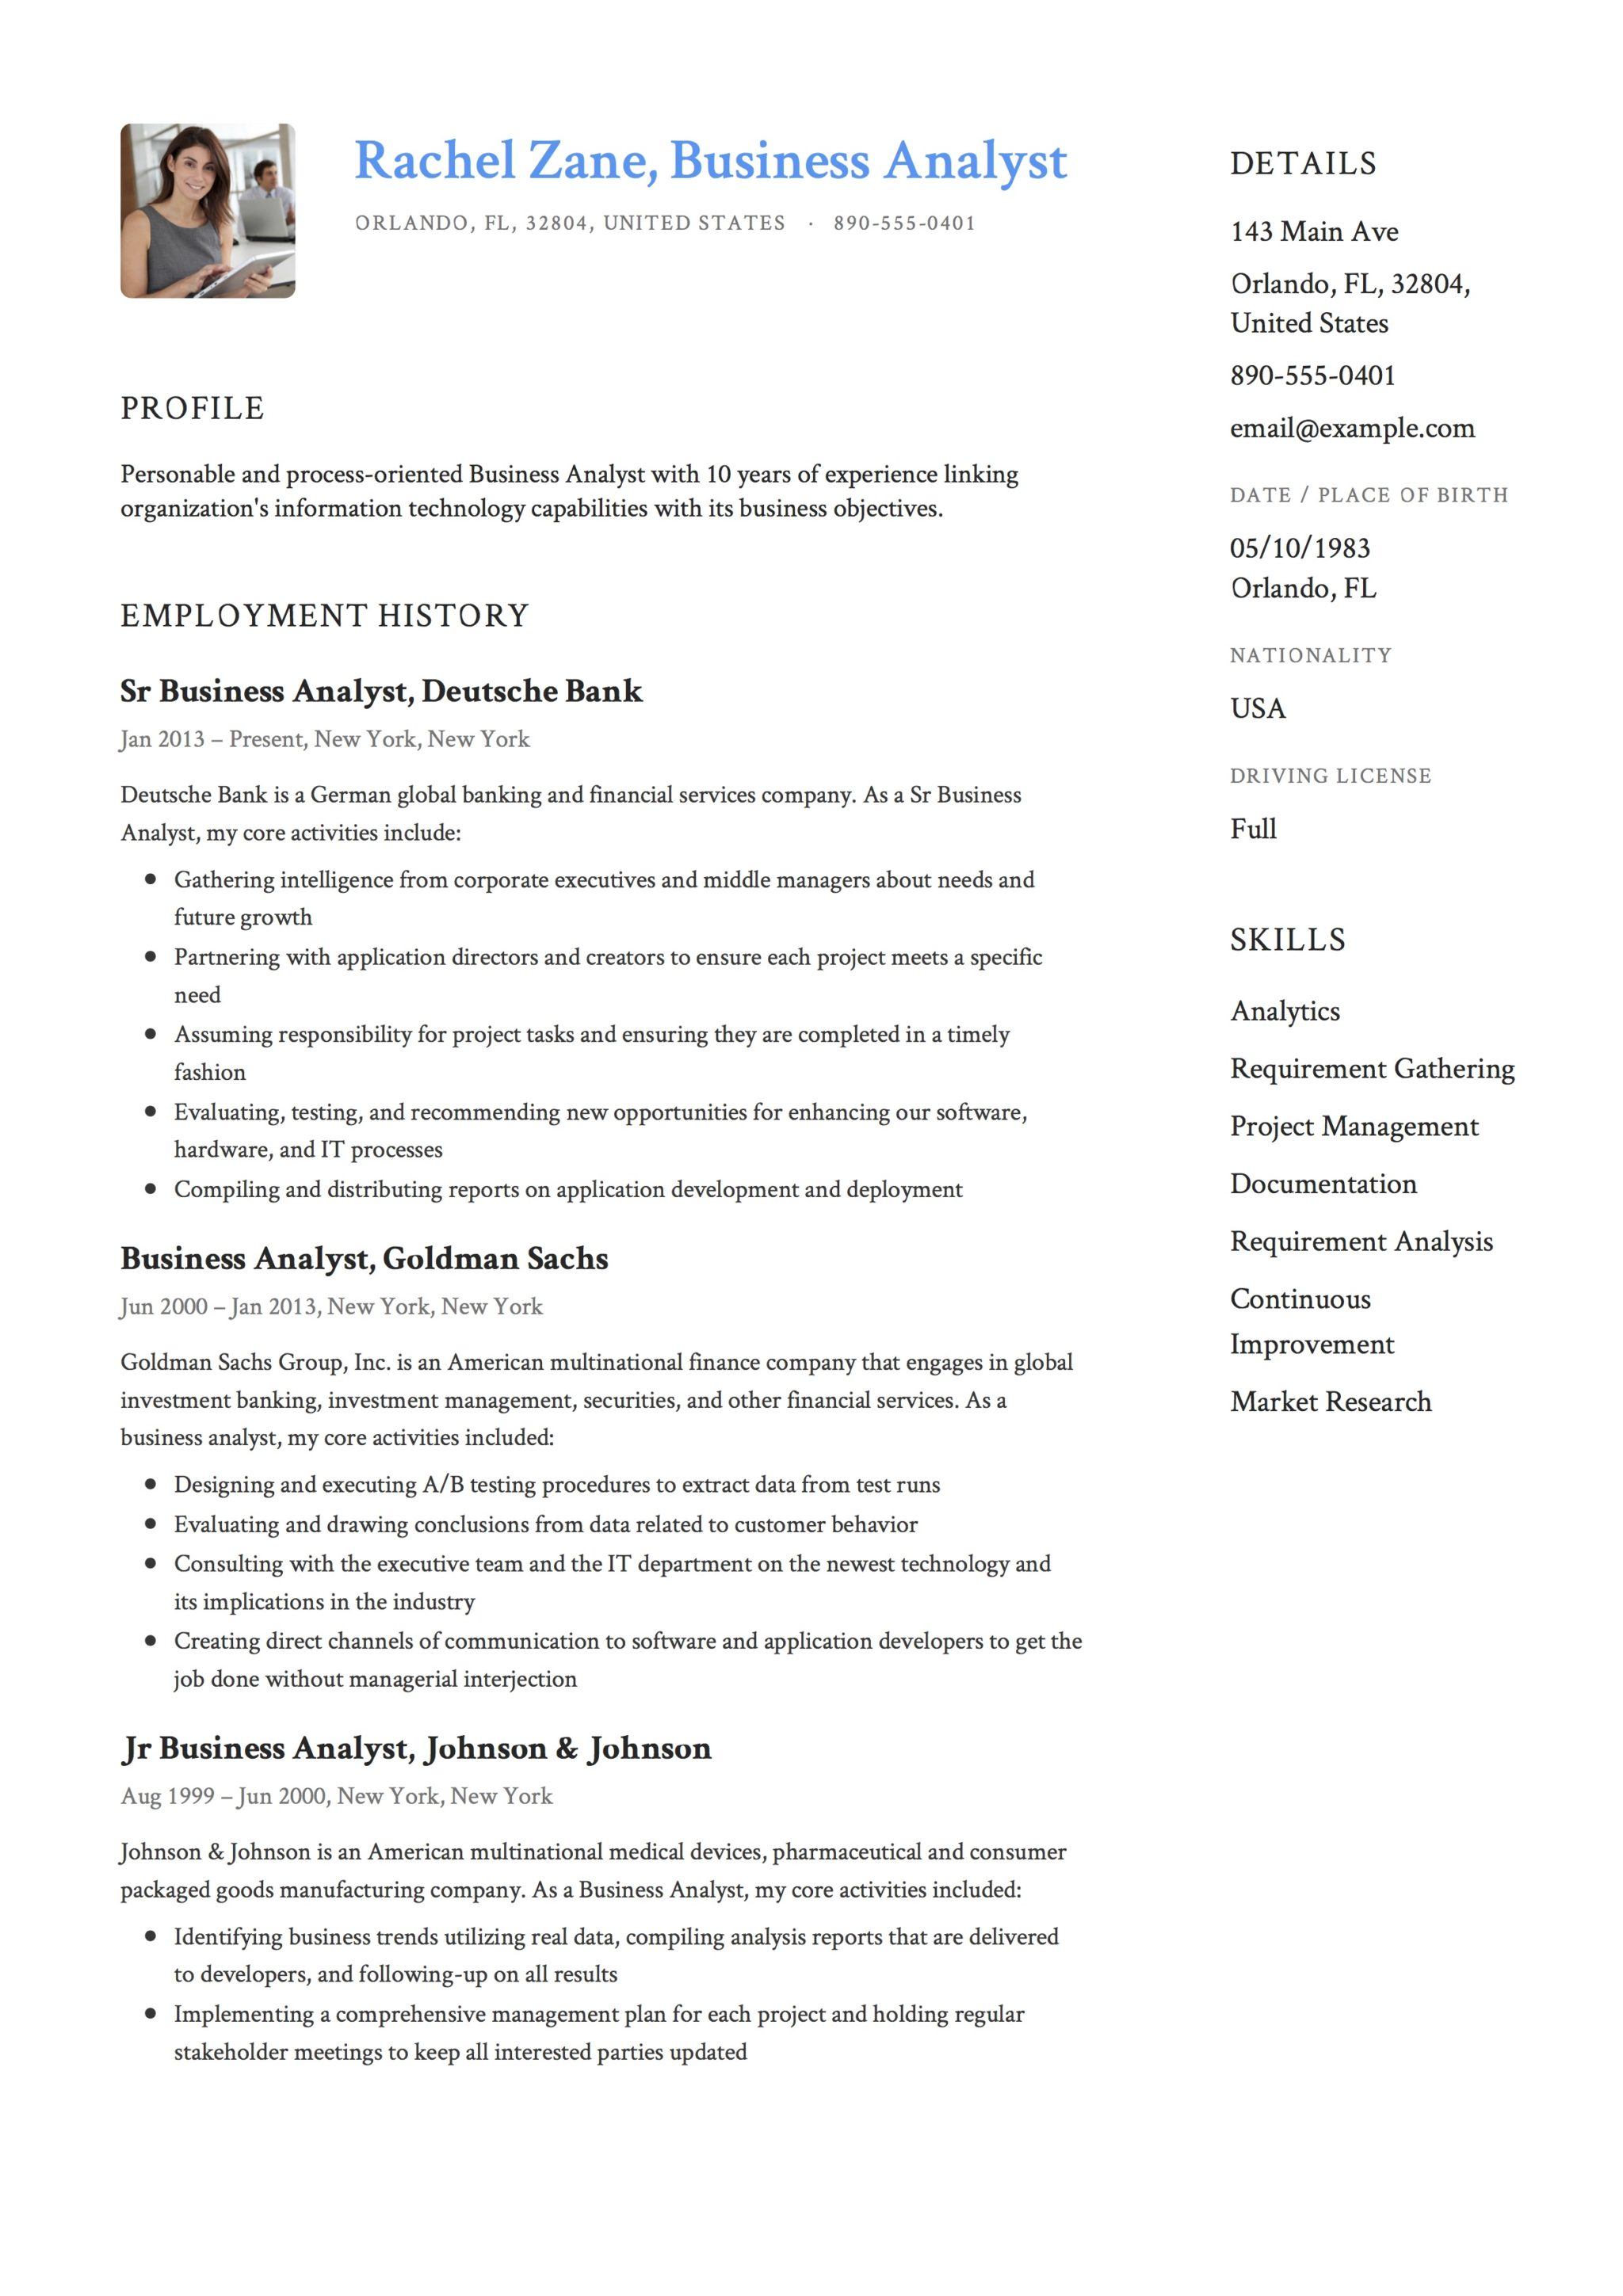 Resume For Business Business Analyst Resume Template Resumeviking